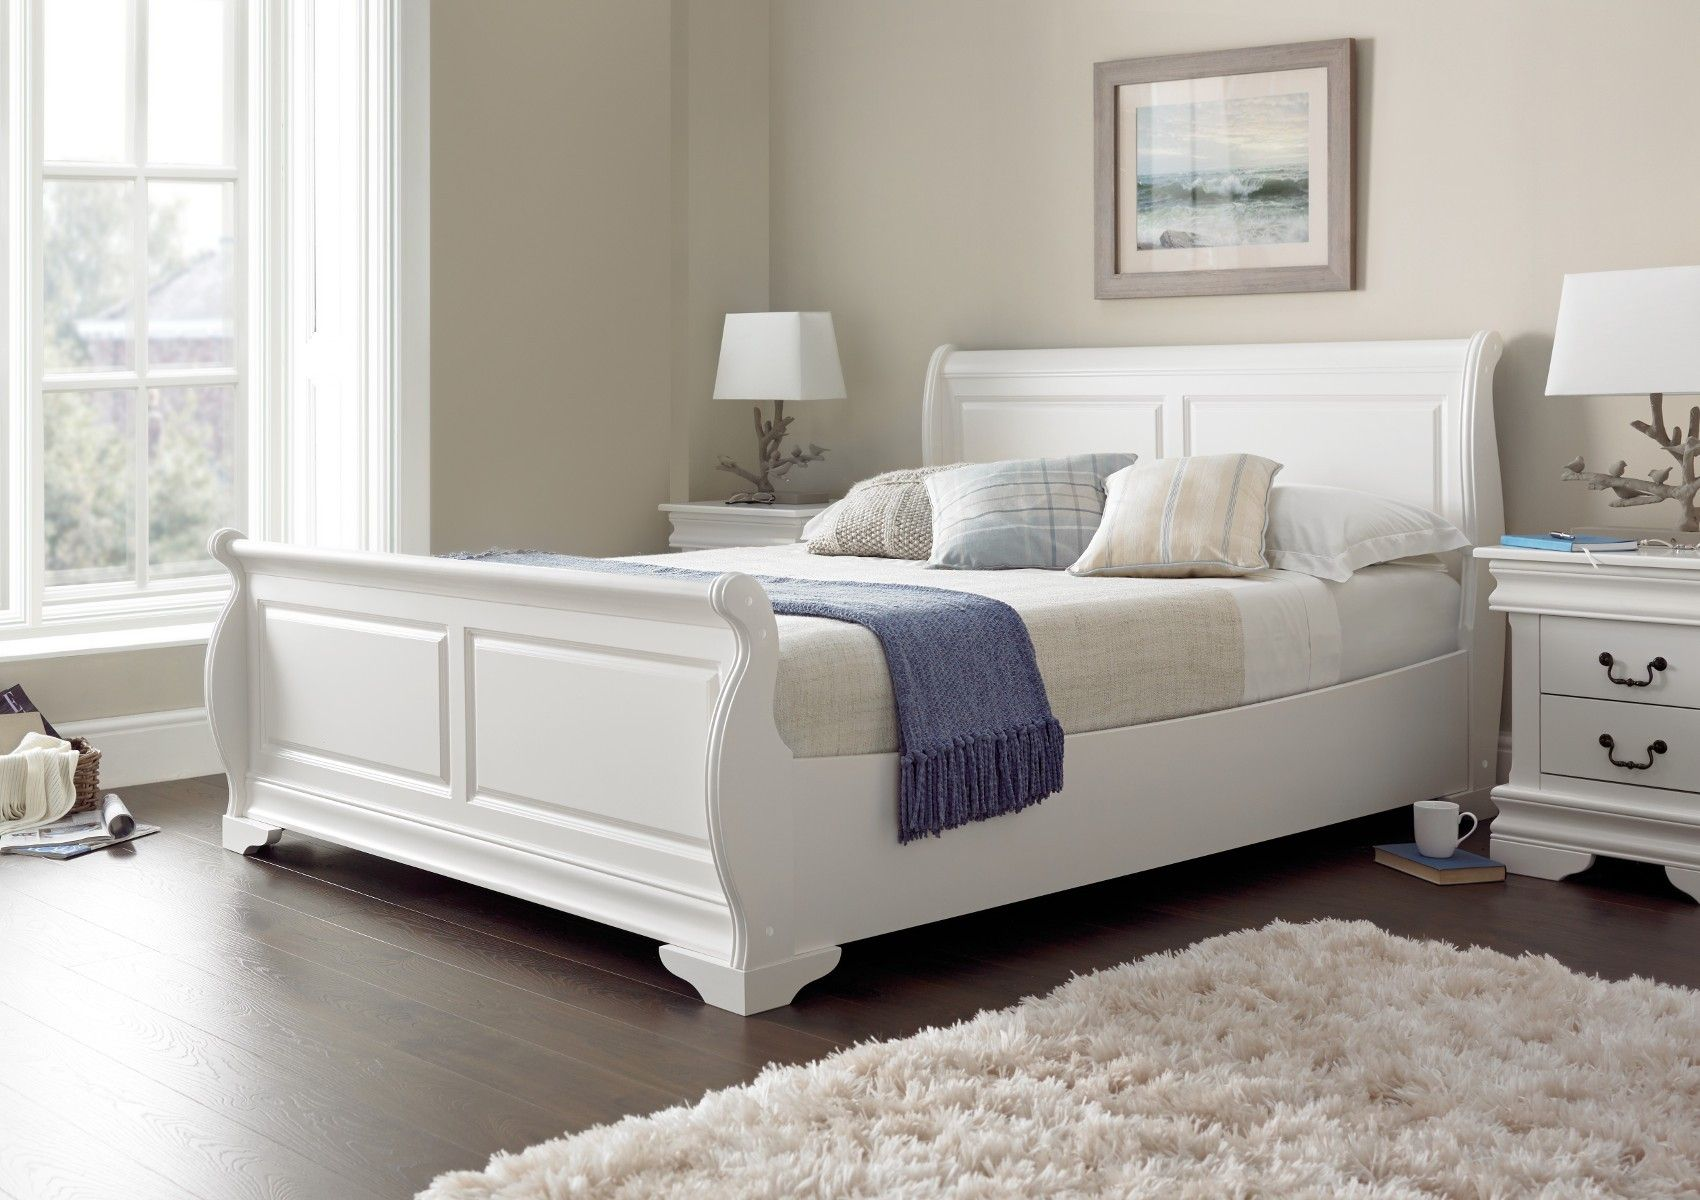 Louie Sleigh Bed Polar White NEW White wooden bed